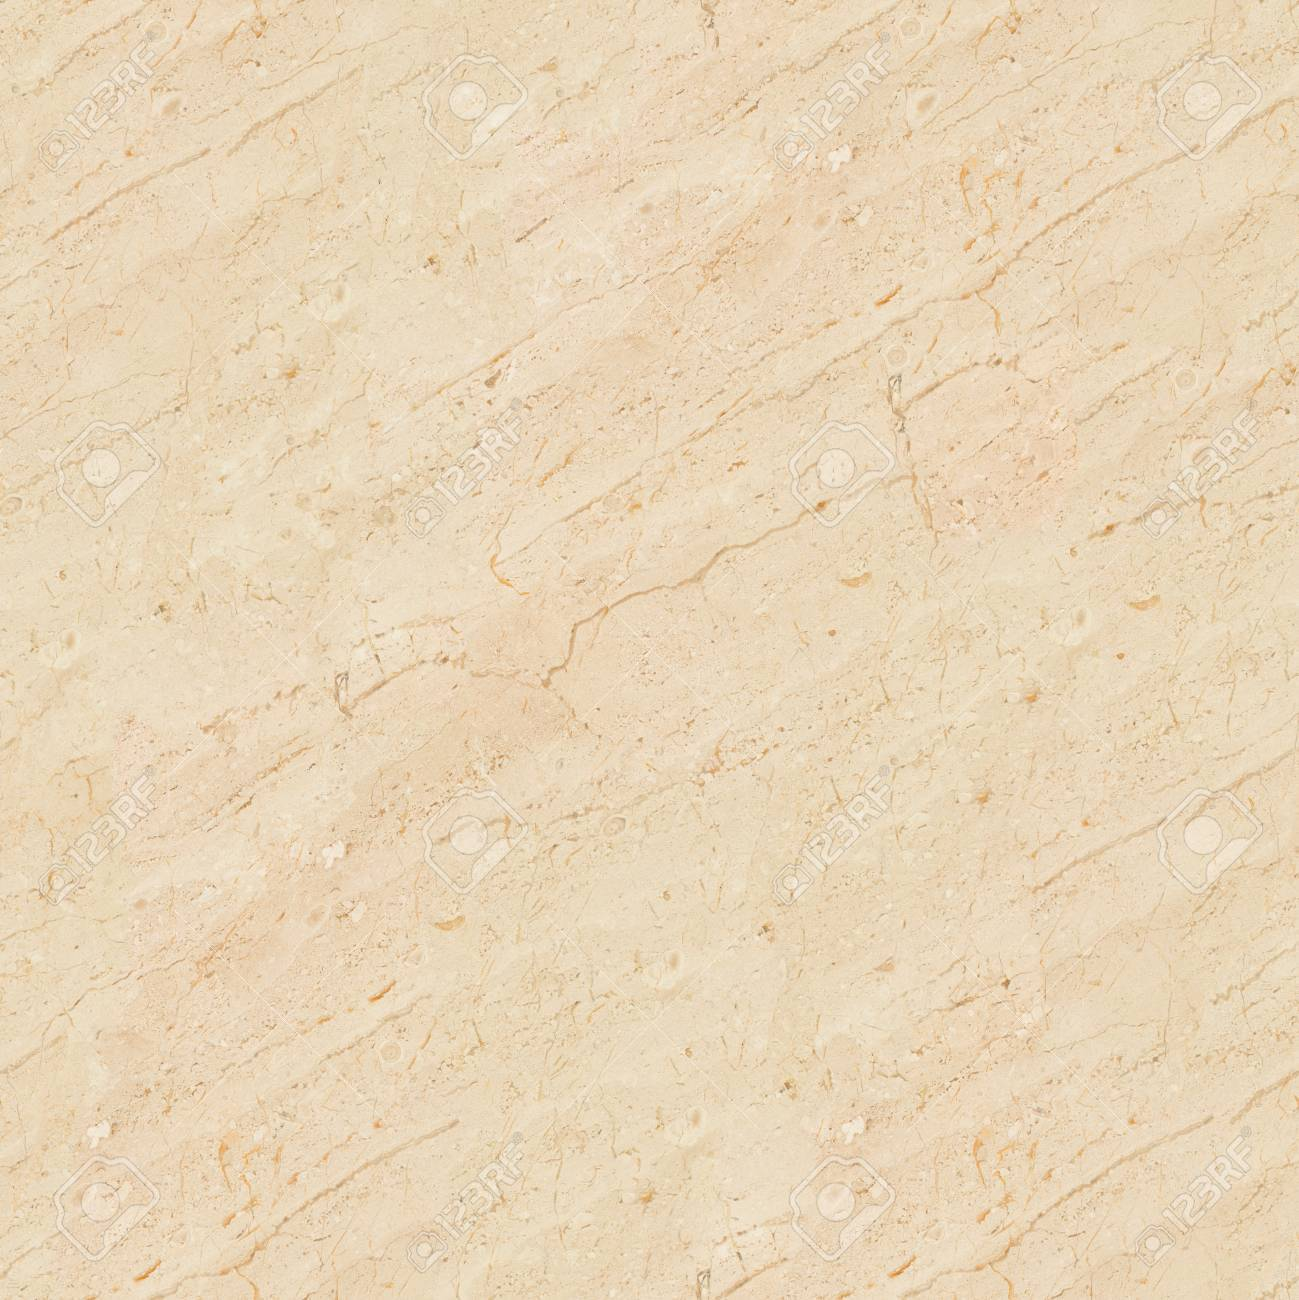 Marble Texture Seamless Square Background Tile Ready High Resolution Photo Stock